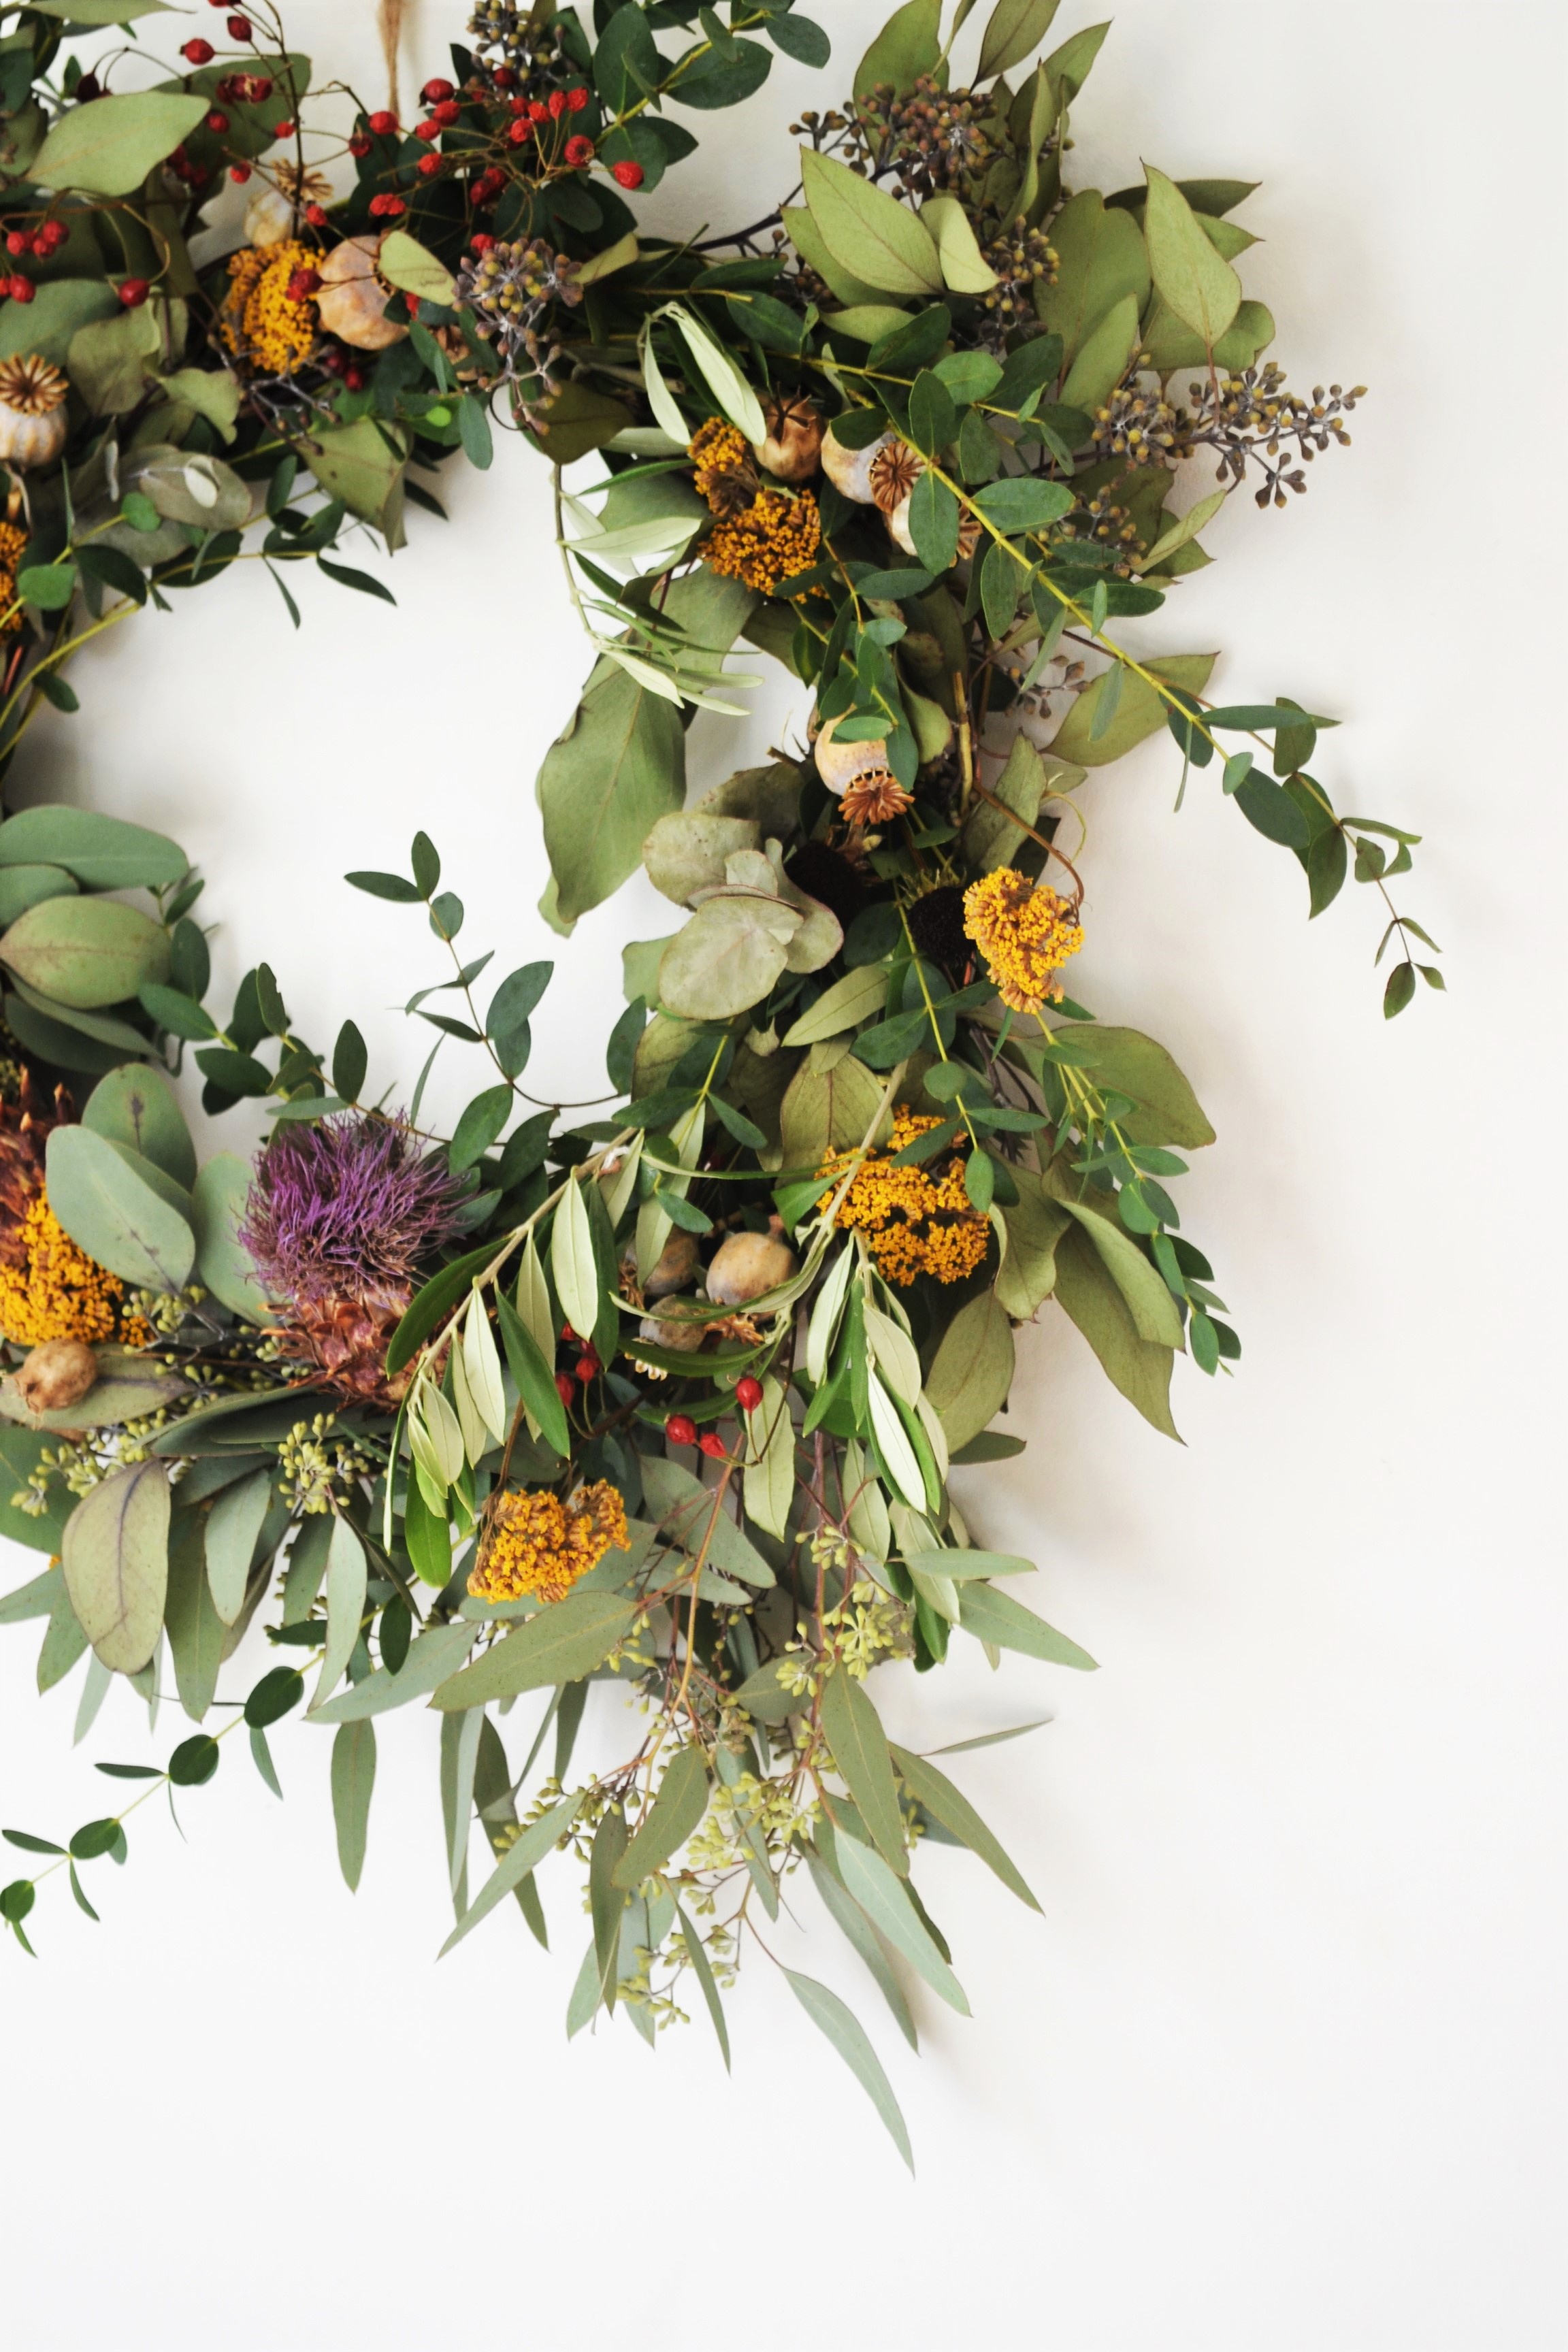 How-to-make-an-autumn-wreath-webb-and-farrer-brighton-flower-workshop (18).JPG